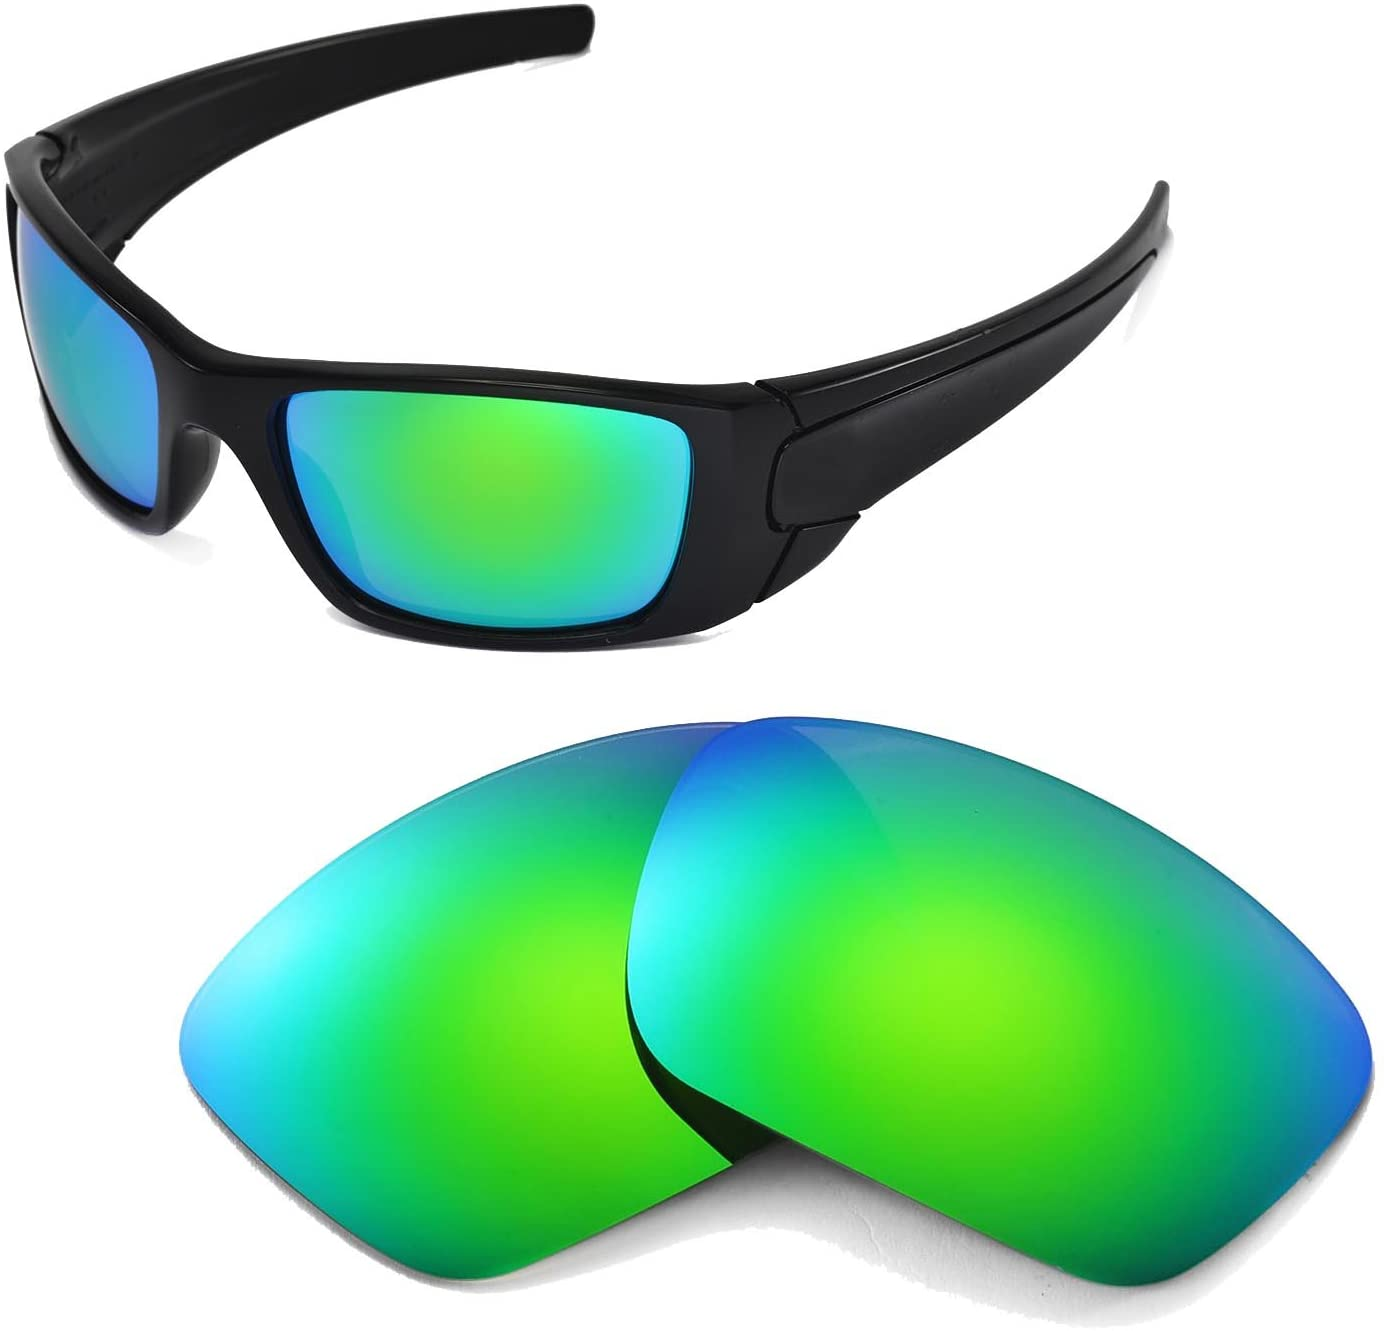 Walleva Replacement Lenses for Oakley Fuel Cell Sunglasses - 17 Options Available